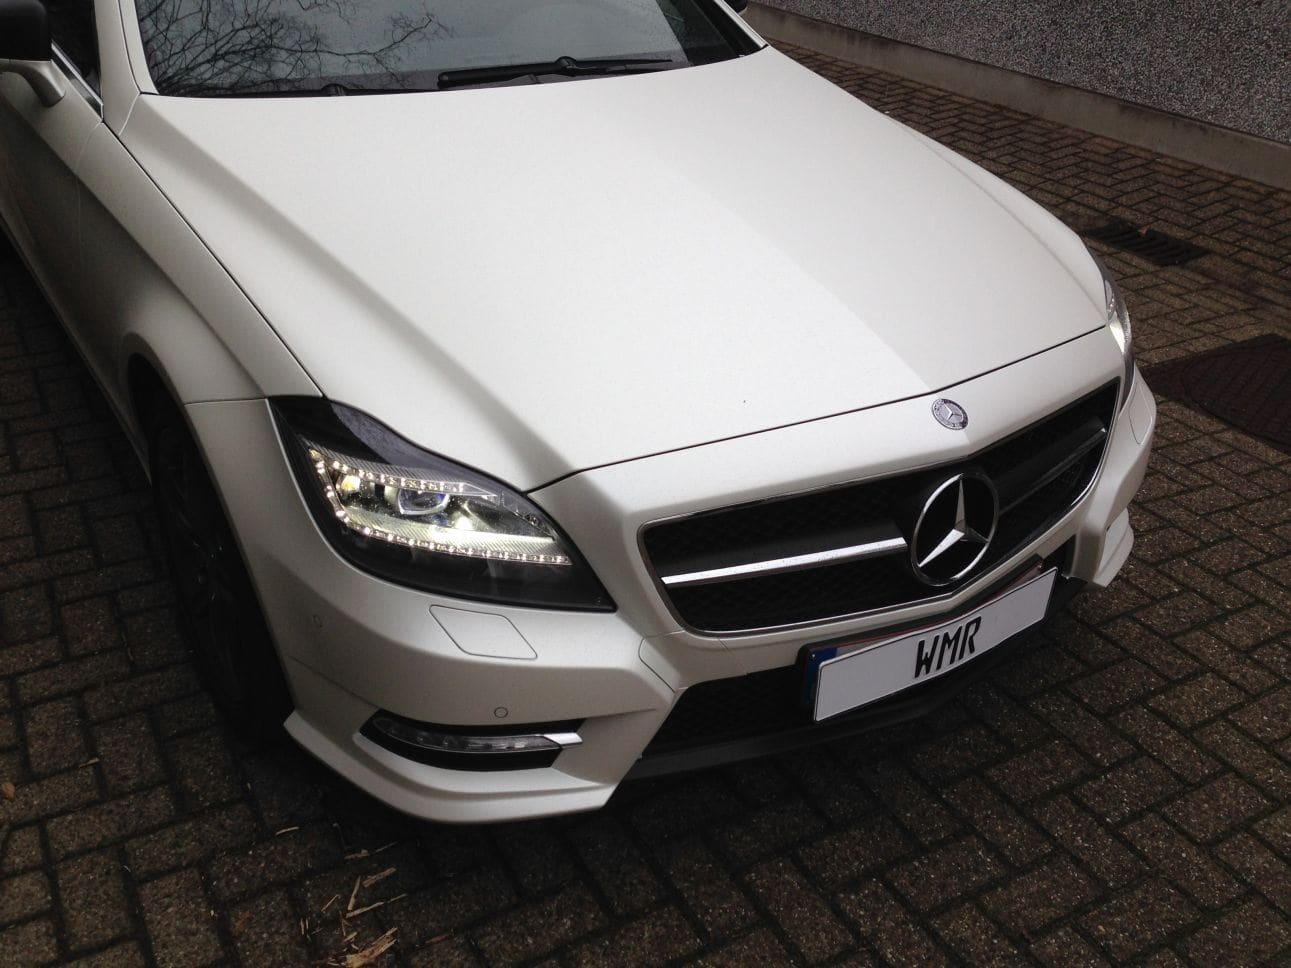 Mercedes CLS met White Satin Pearl Wrap, Carwrapping door Wrapmyride.nu Foto-nr:6205, ©2021